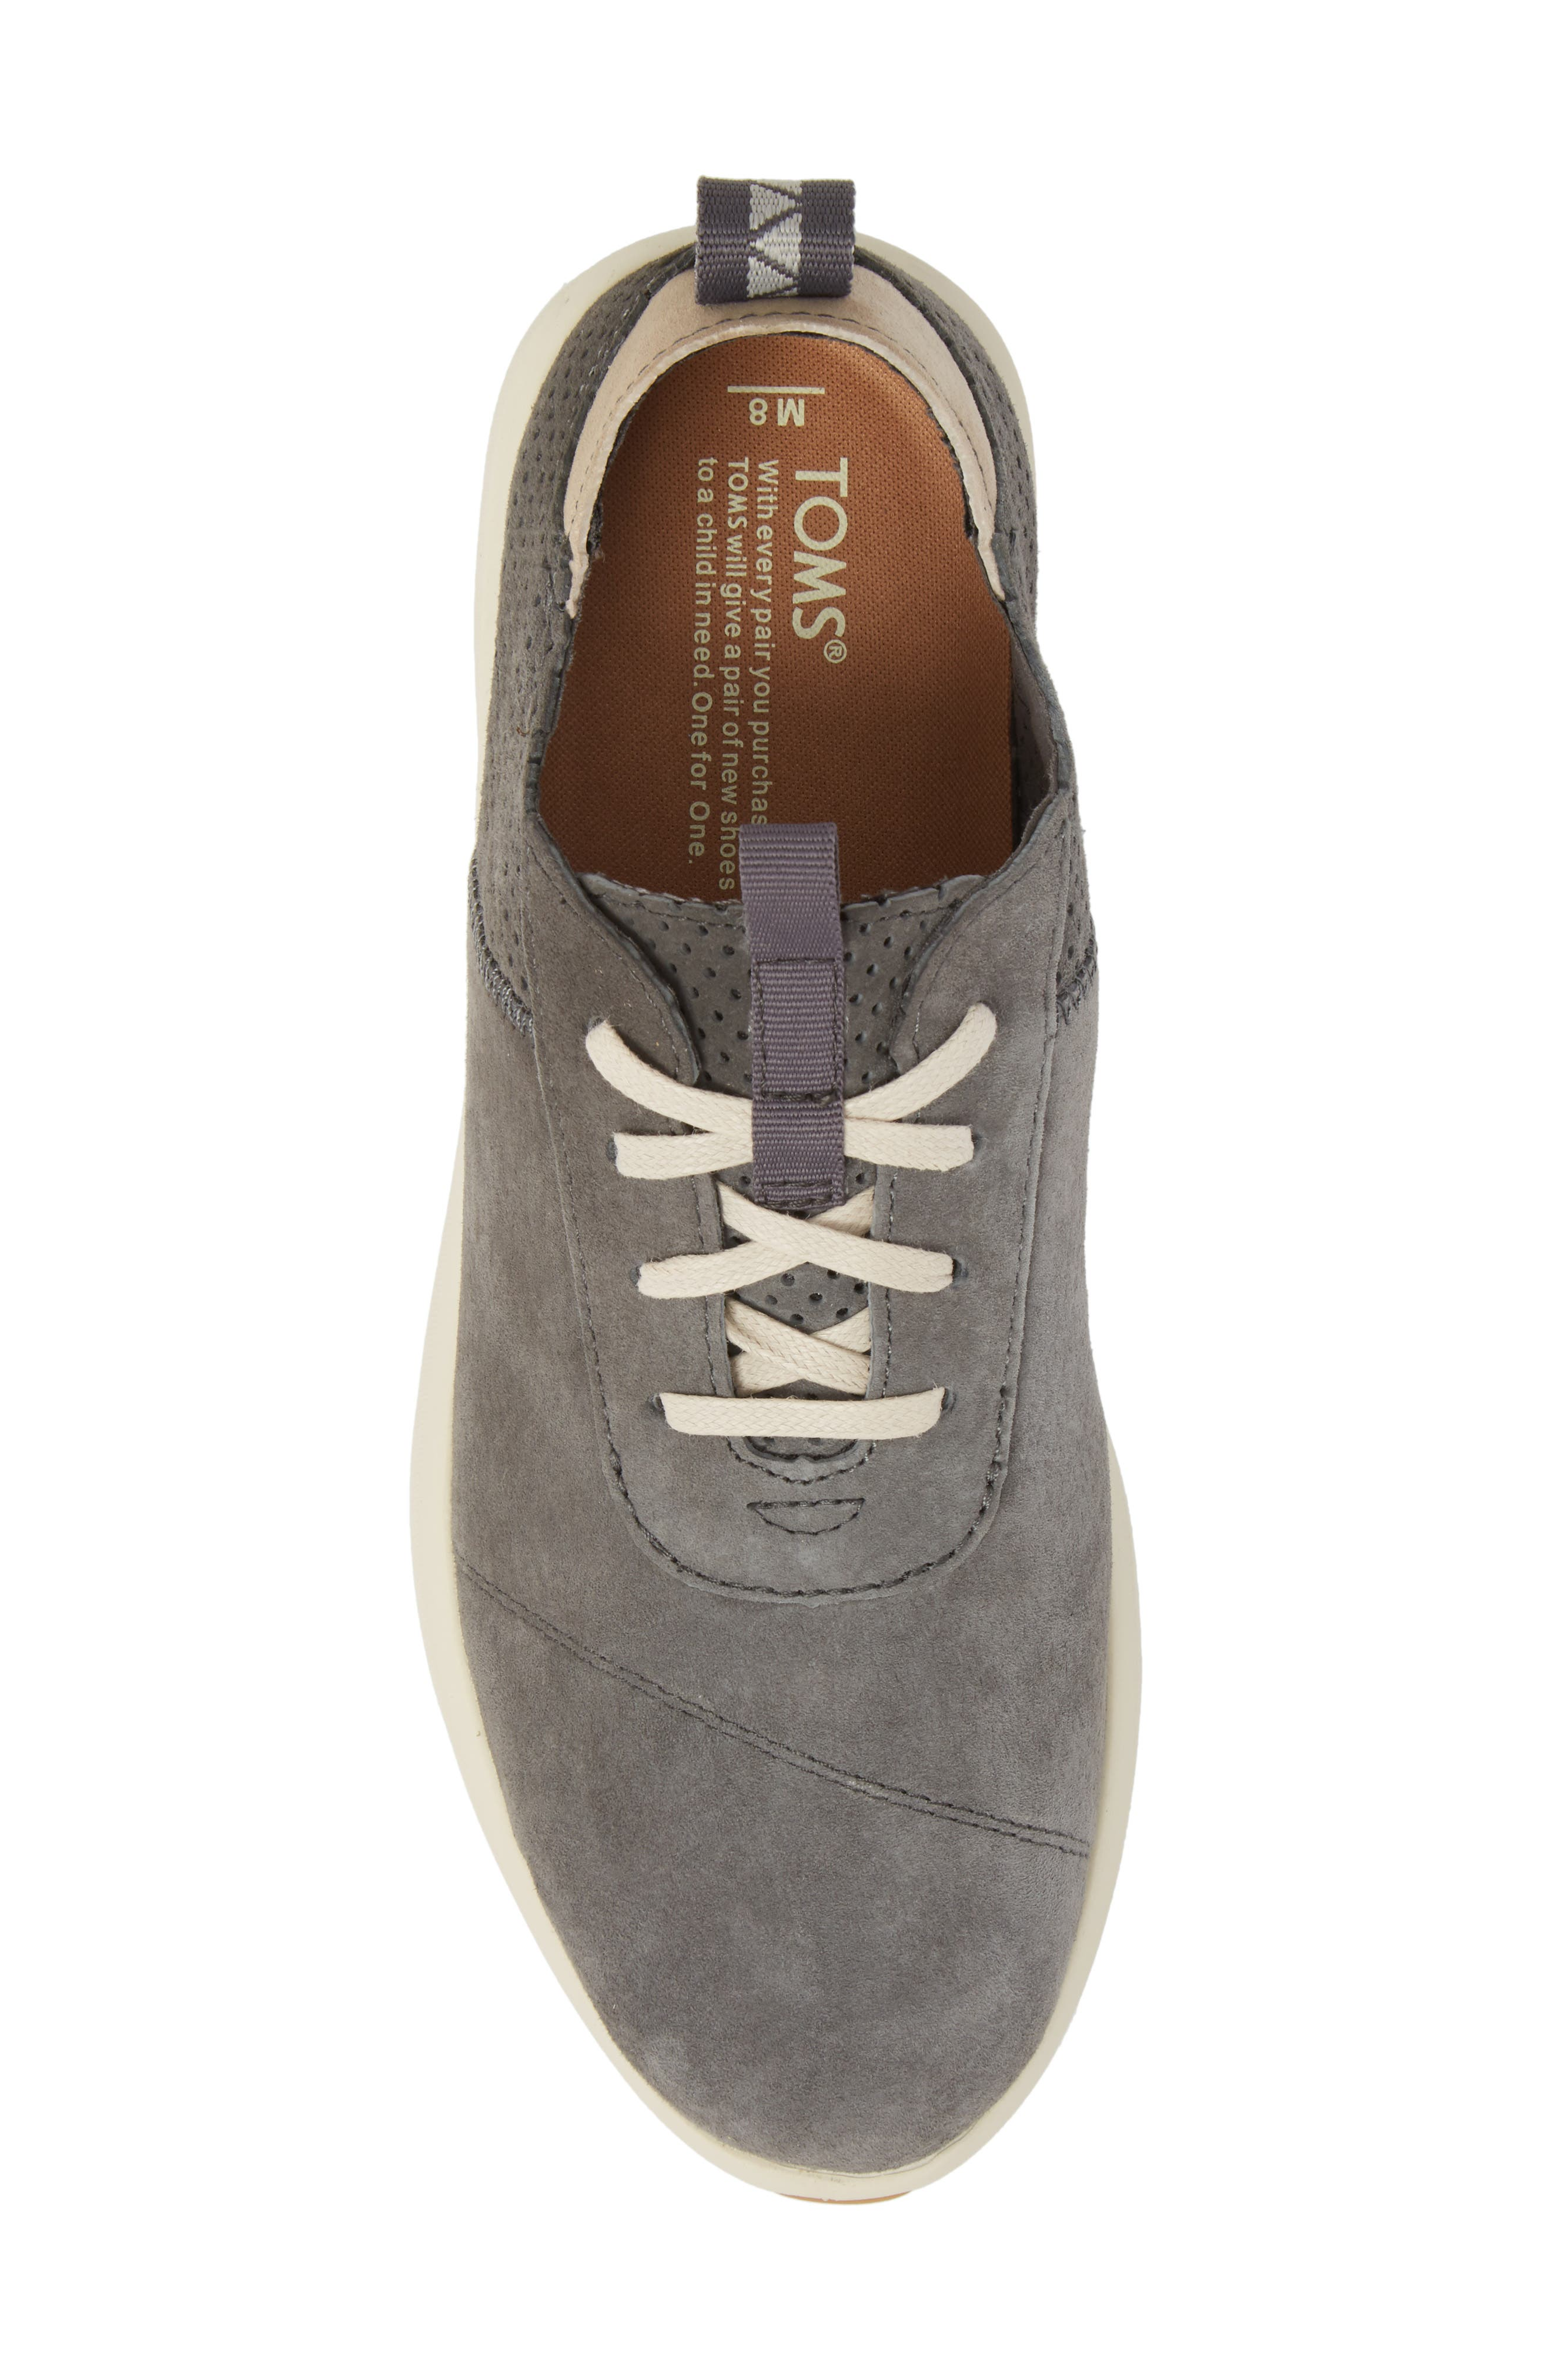 Cabrillo Perforated Low Top Sneaker,                             Alternate thumbnail 5, color,                             Shade Suede